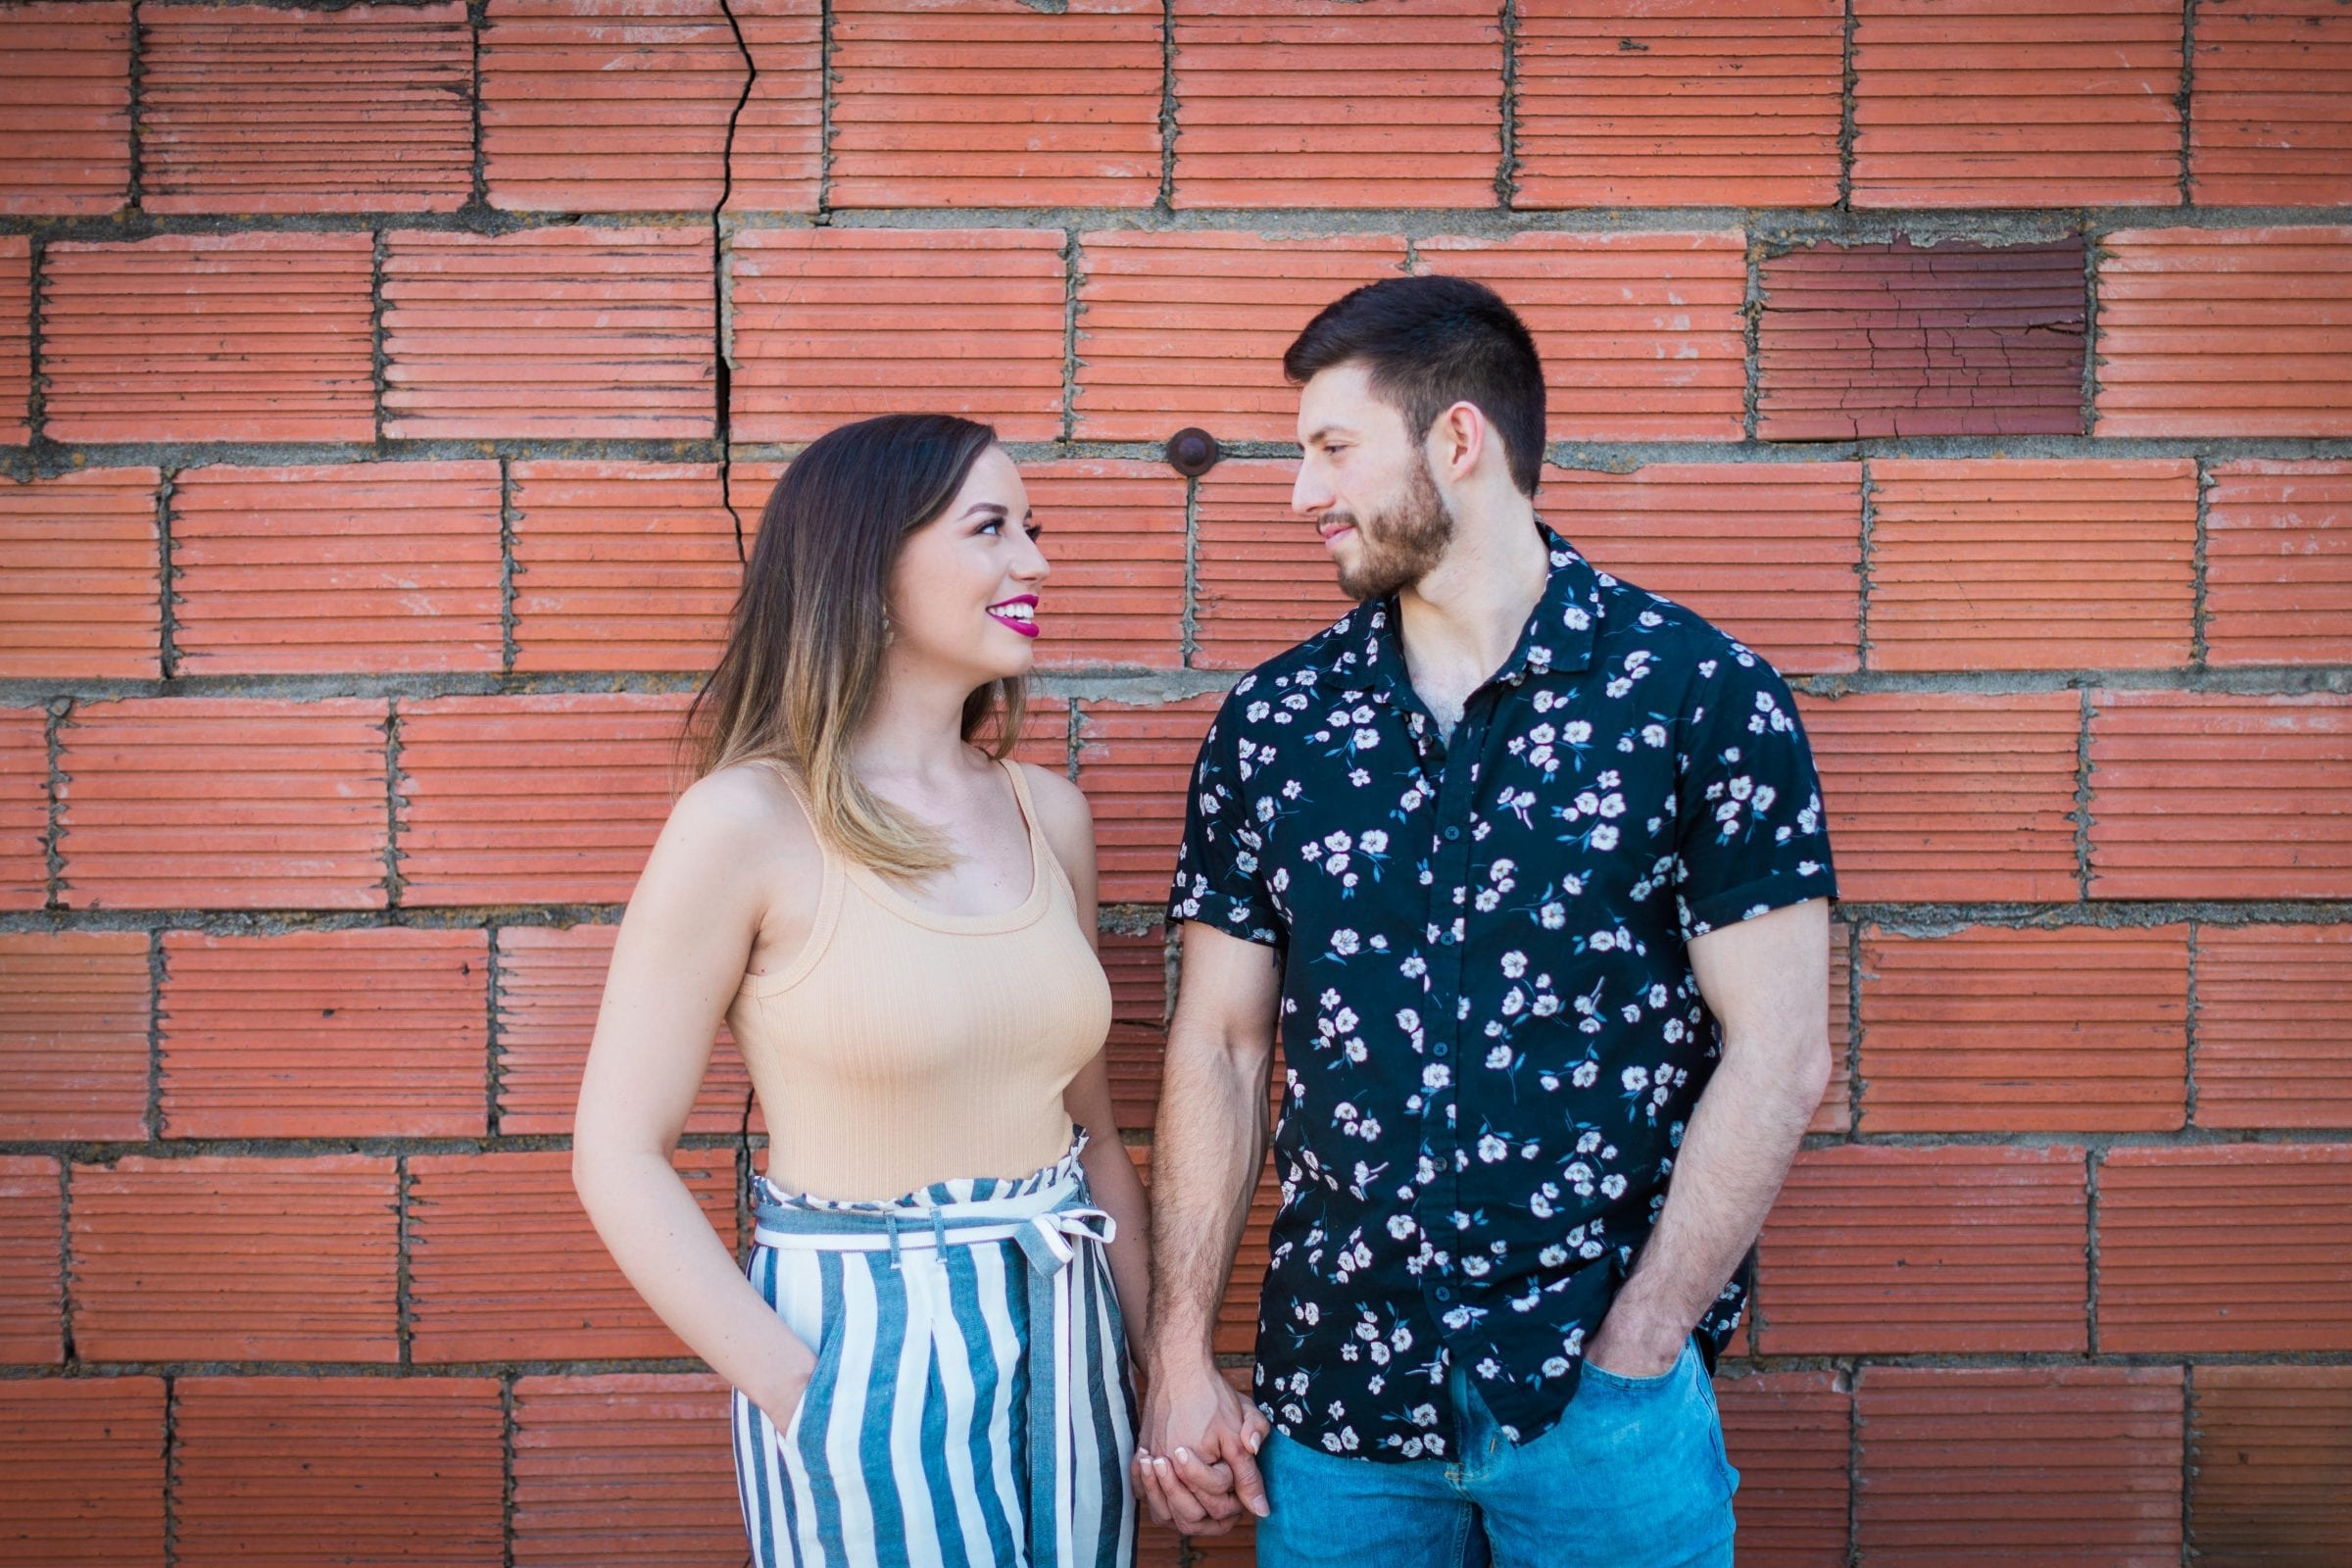 Liz and Ruben engagement looking at each other on red brick wall downtown New Braunfels